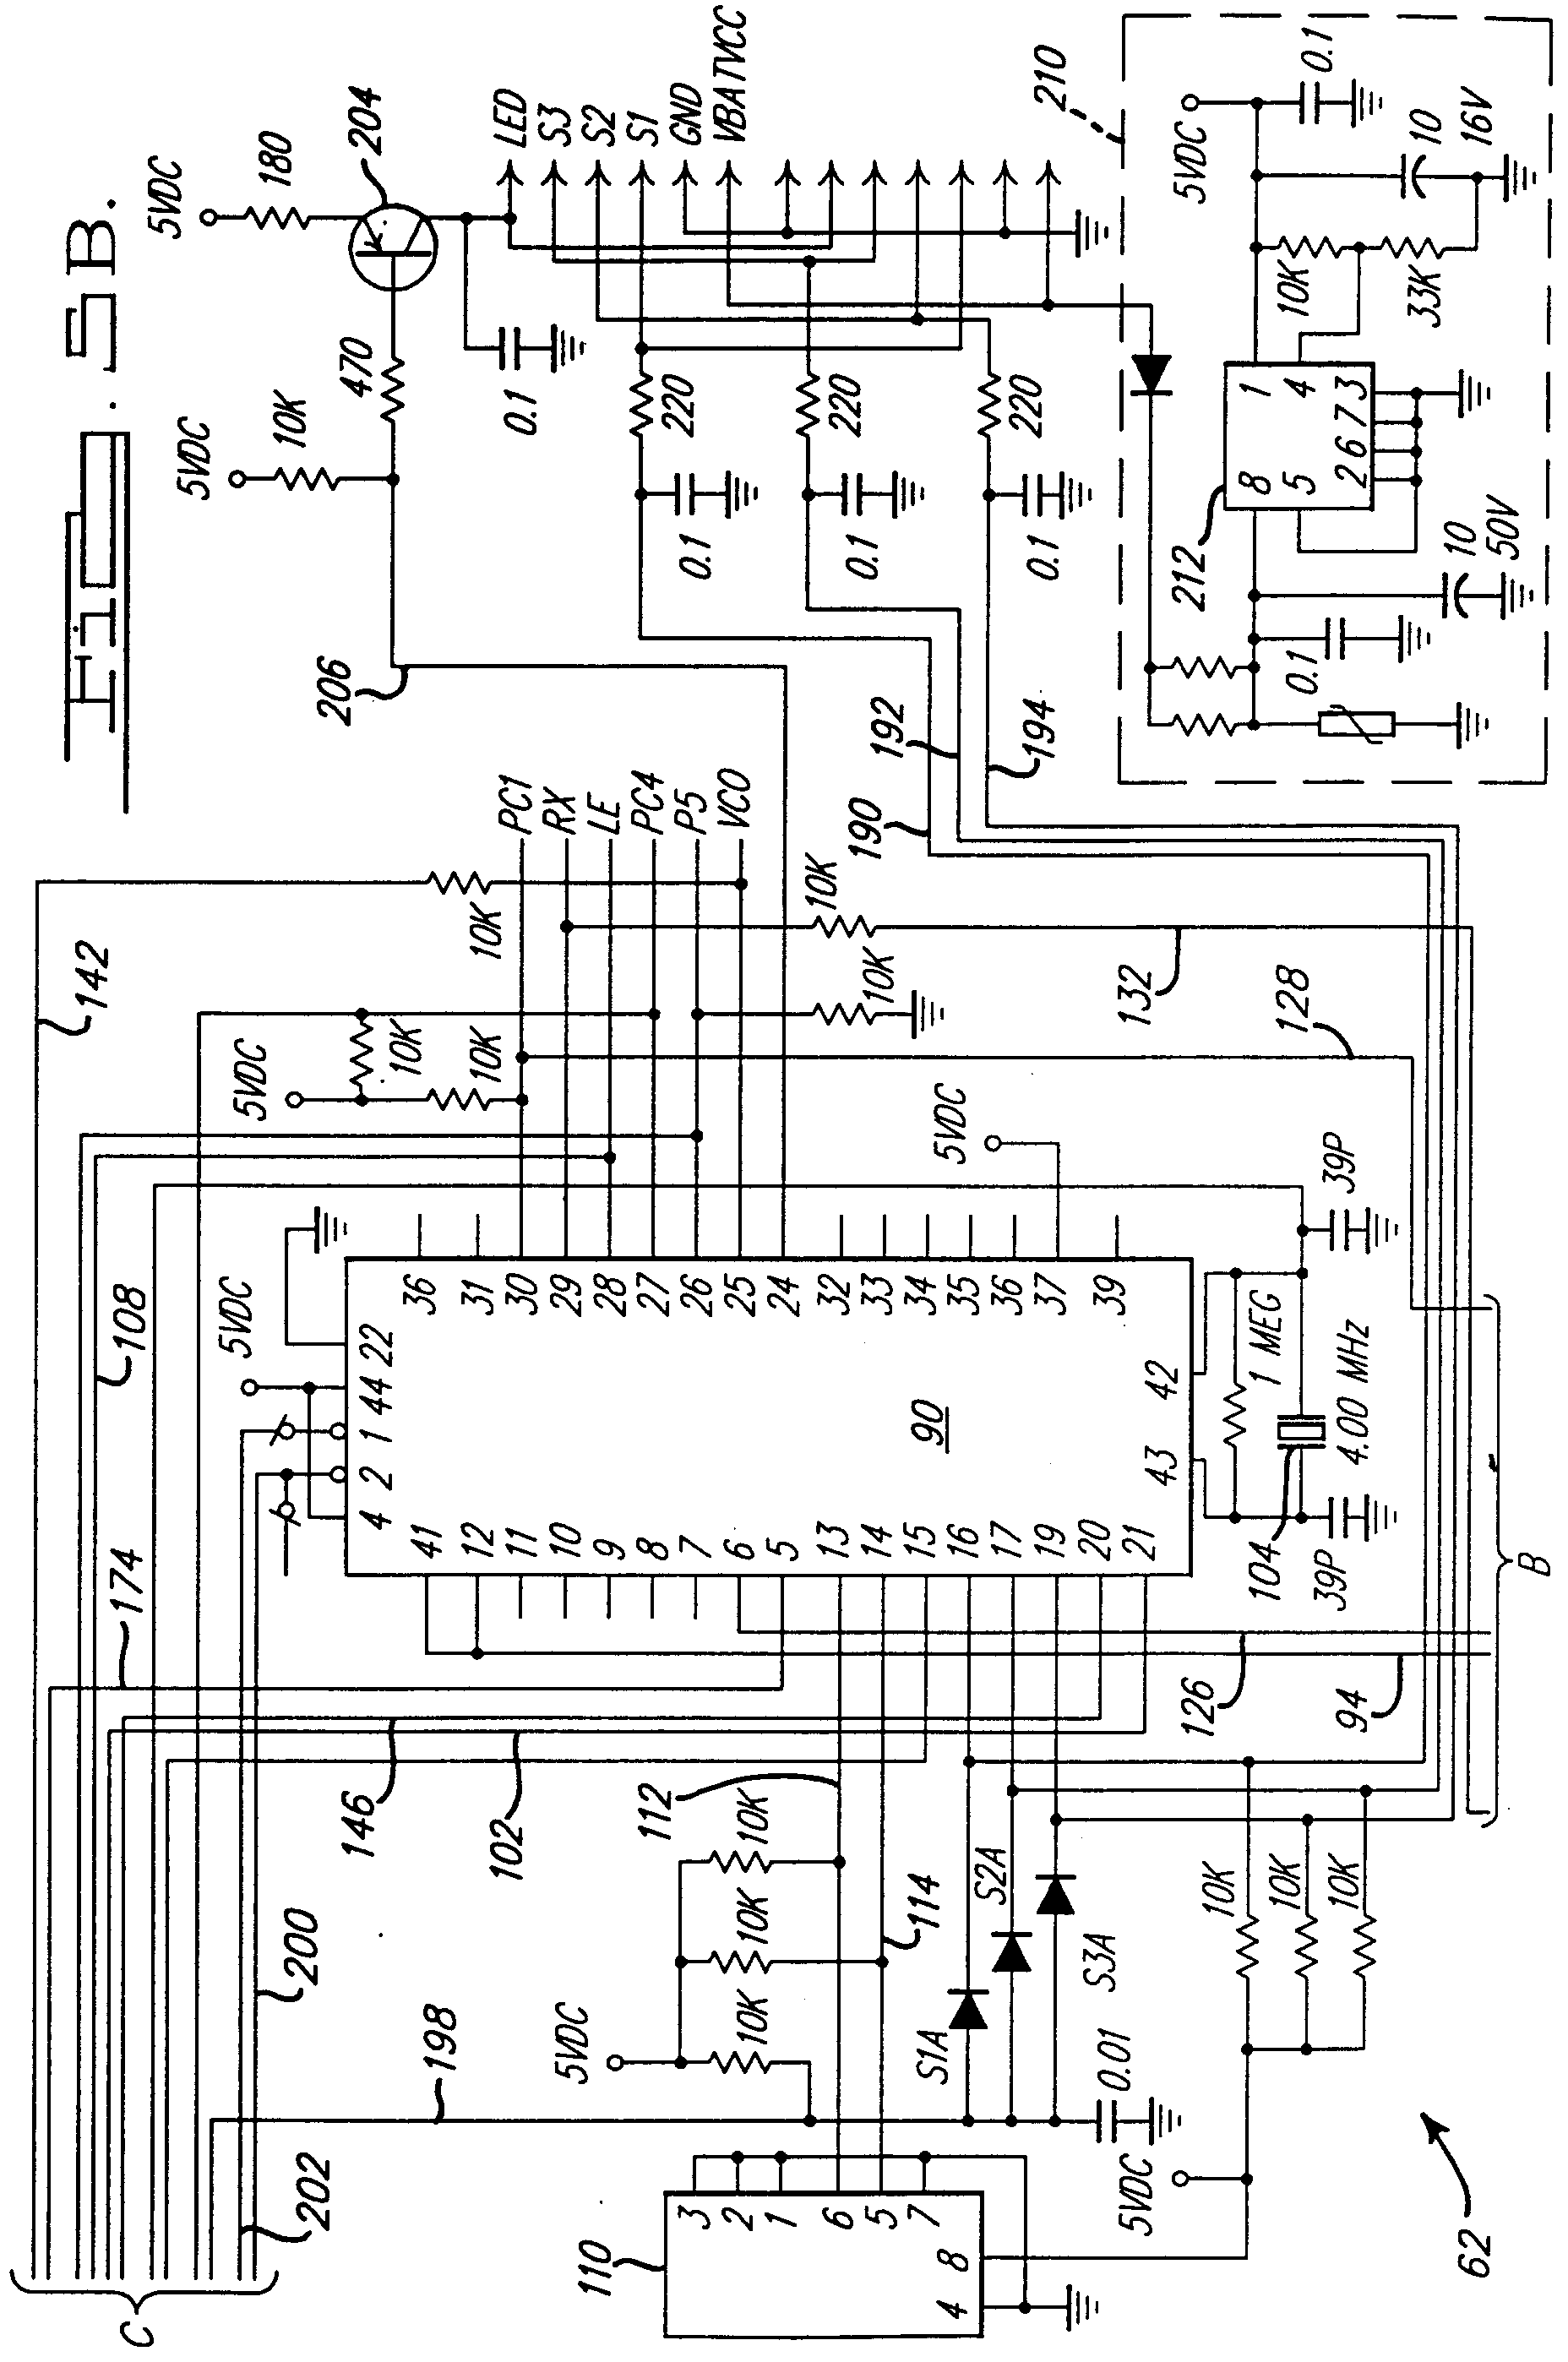 00350001 patent ep0875646a1 universal garage door opener google patents garage door opener wiring schematic at n-0.co